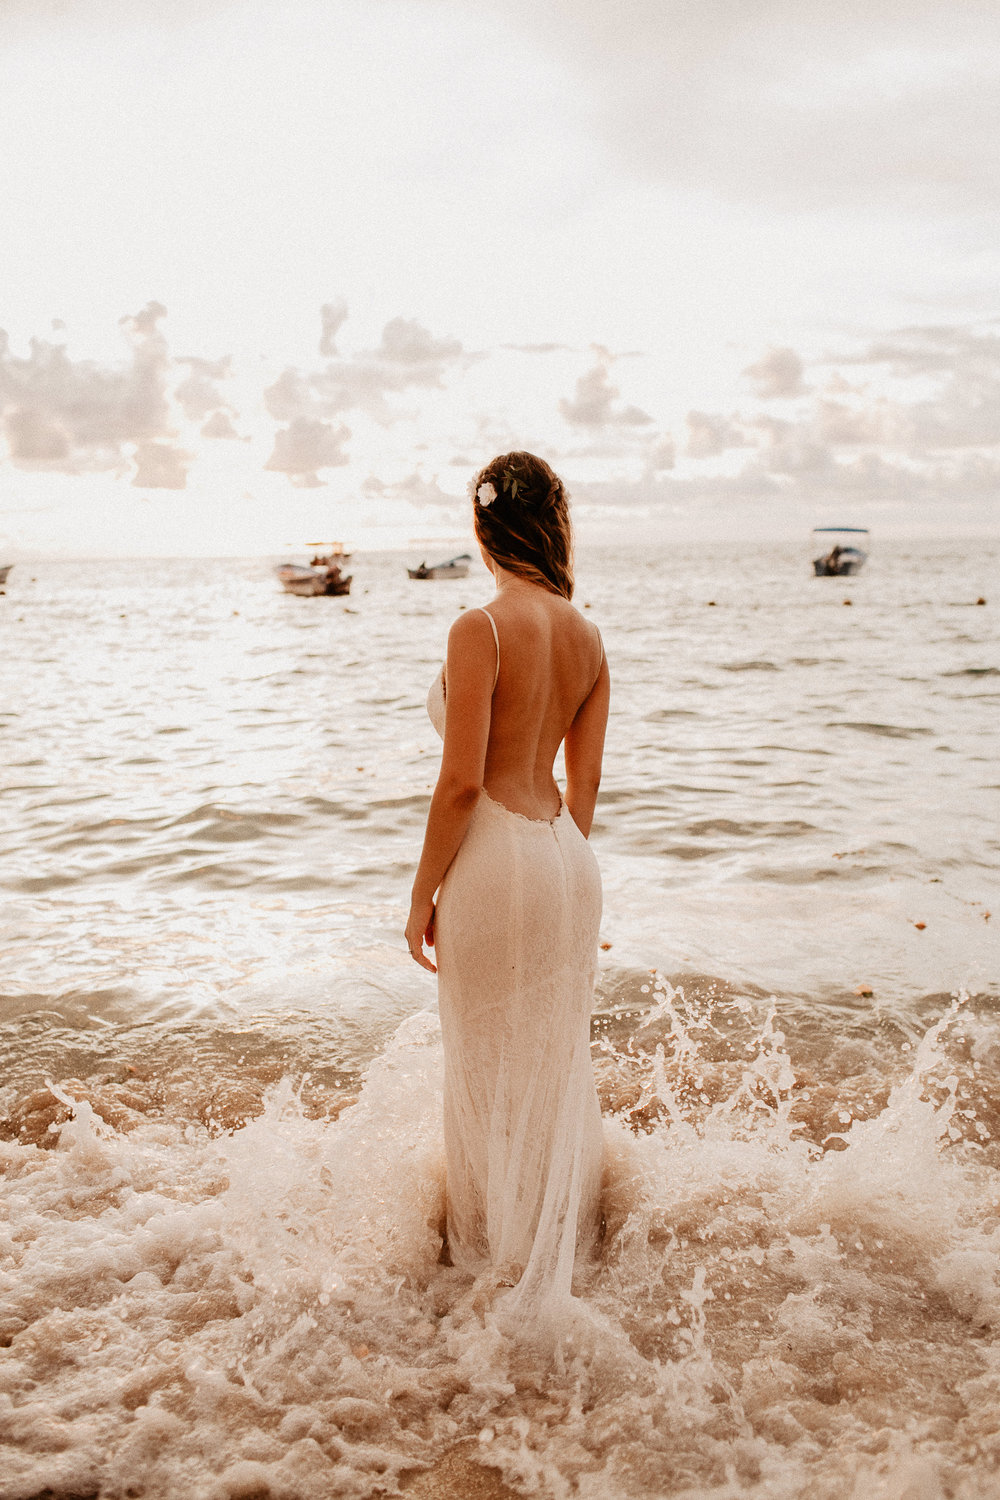 alfonso_flores_destination_wedding_photography_puerto_vallarta_hotel_barcelo_vallarta_cuttler_amela-825.JPG